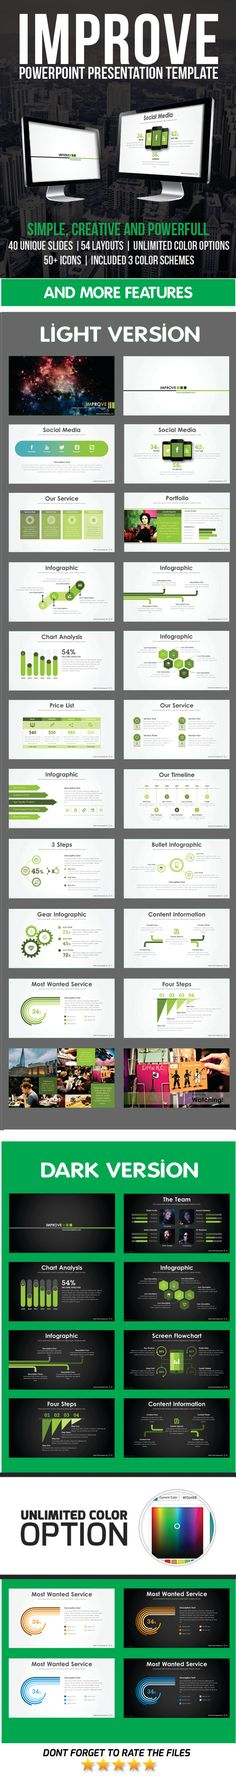 Improve PowerPoint Template Presentation #slides Download: http://graphicriver.net/item/improve-powerpoint-template/11628383?ref=ksioks